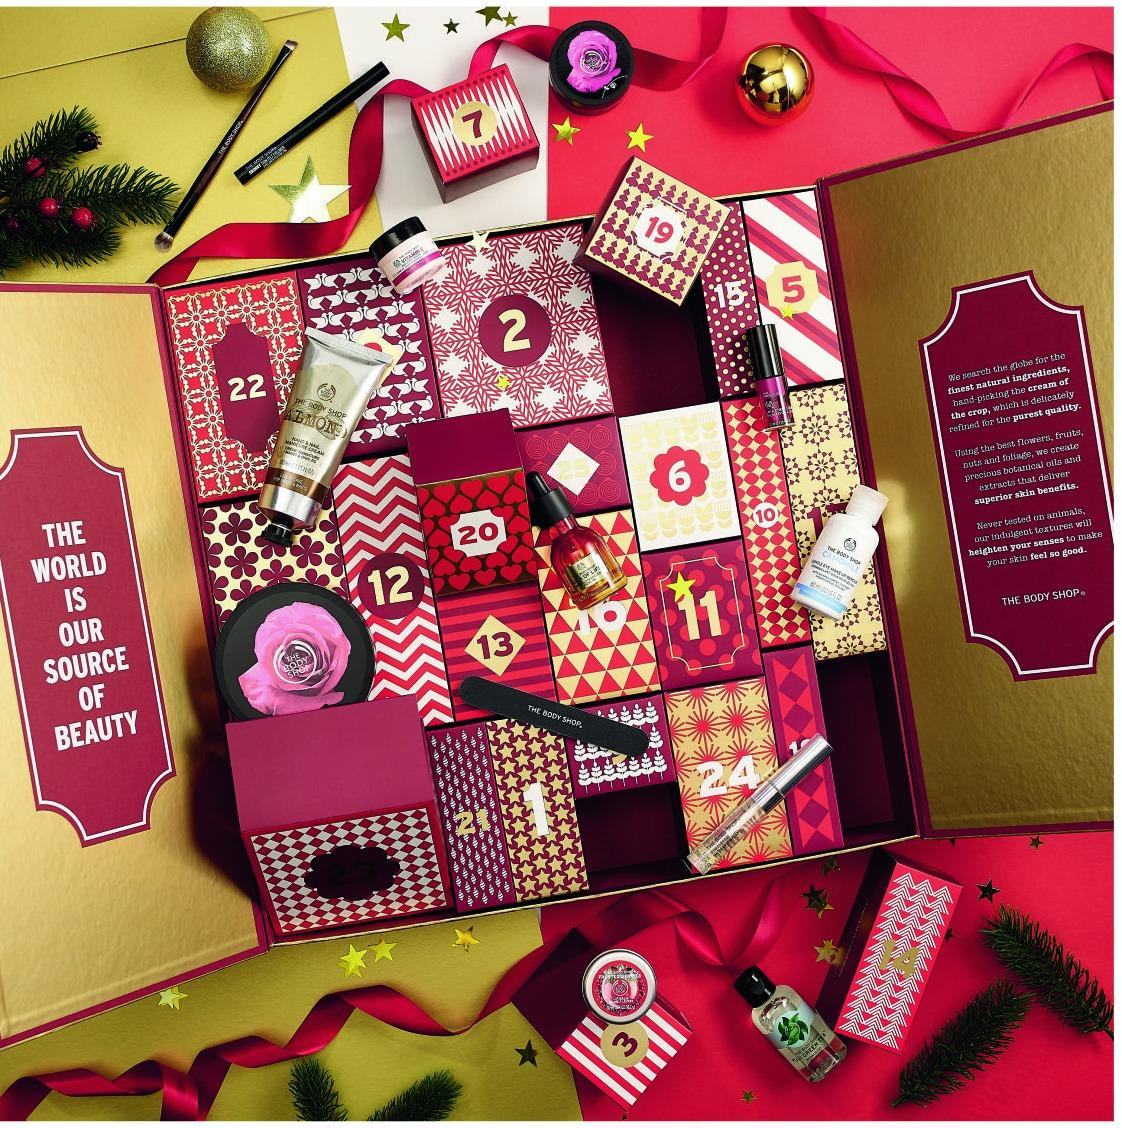 body shop adventskalender preis